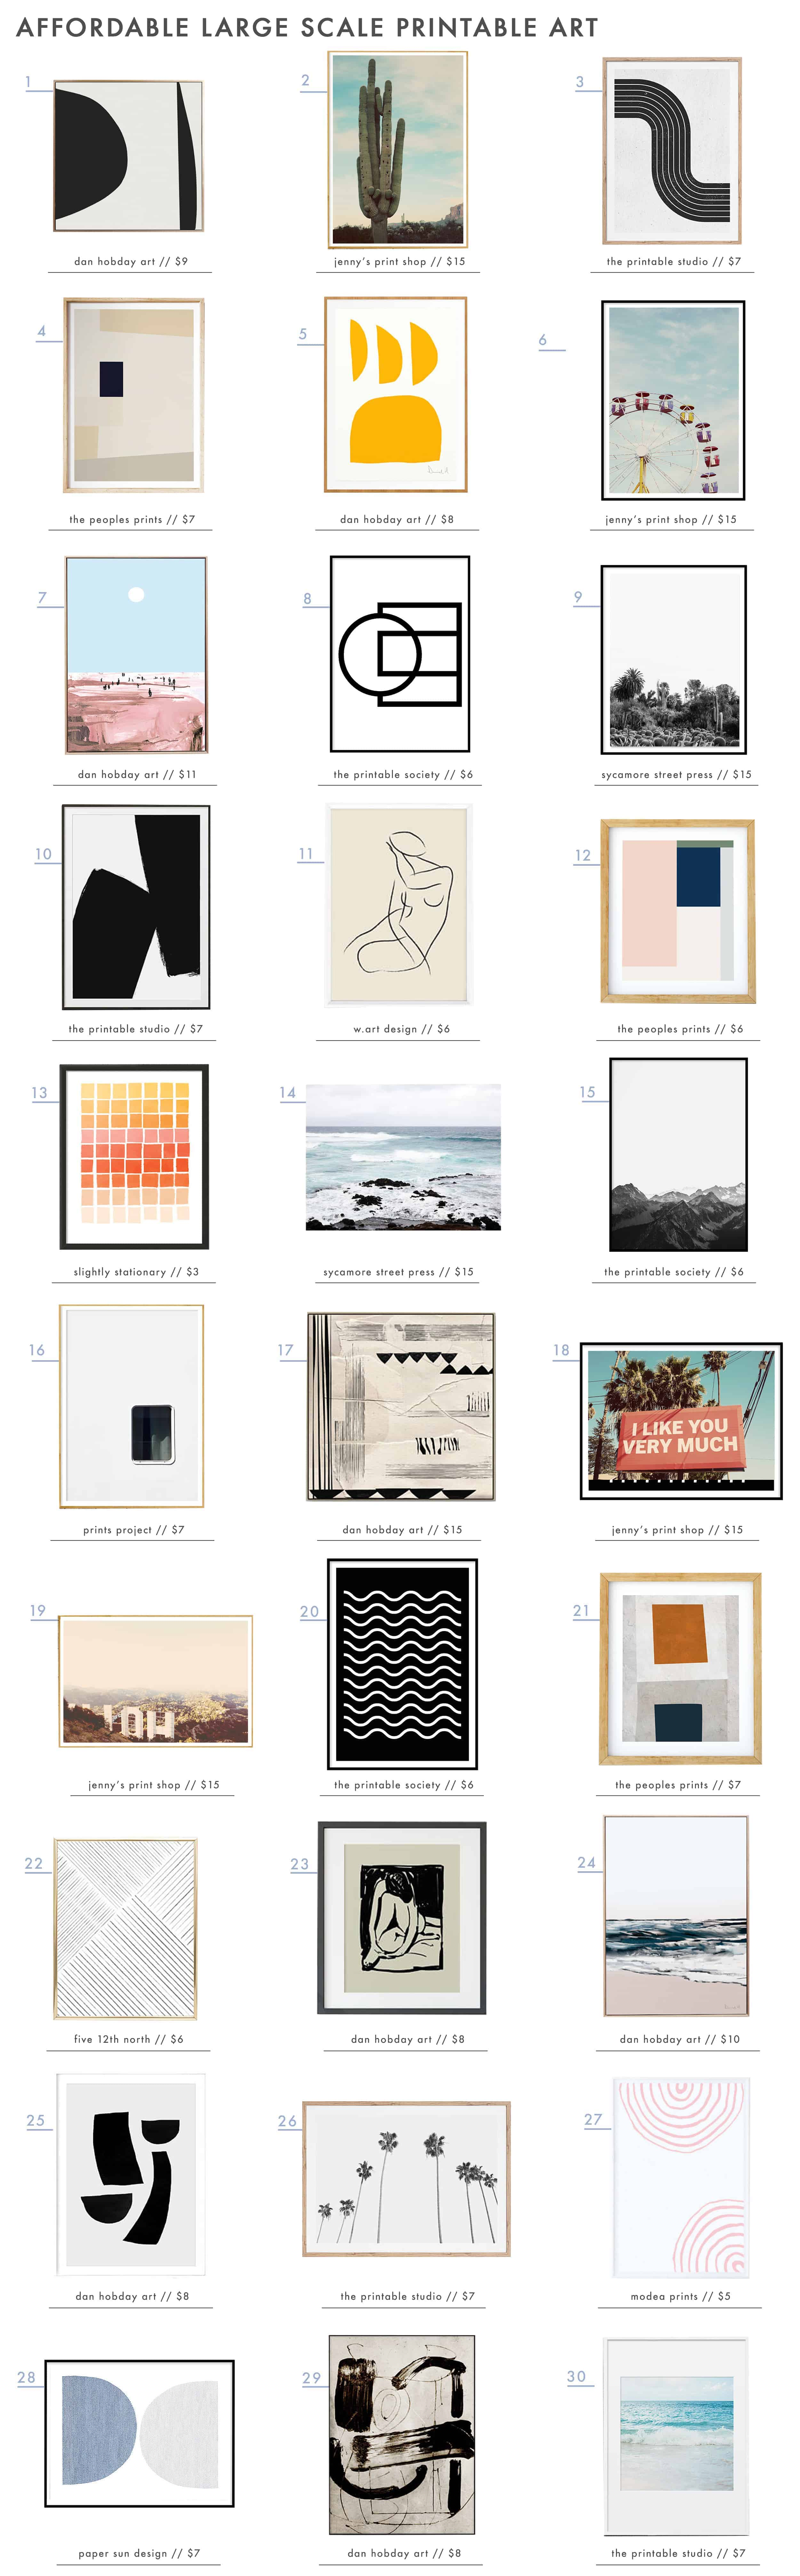 Emily Henderson Large Scale Art Printable Affordable Roundup1